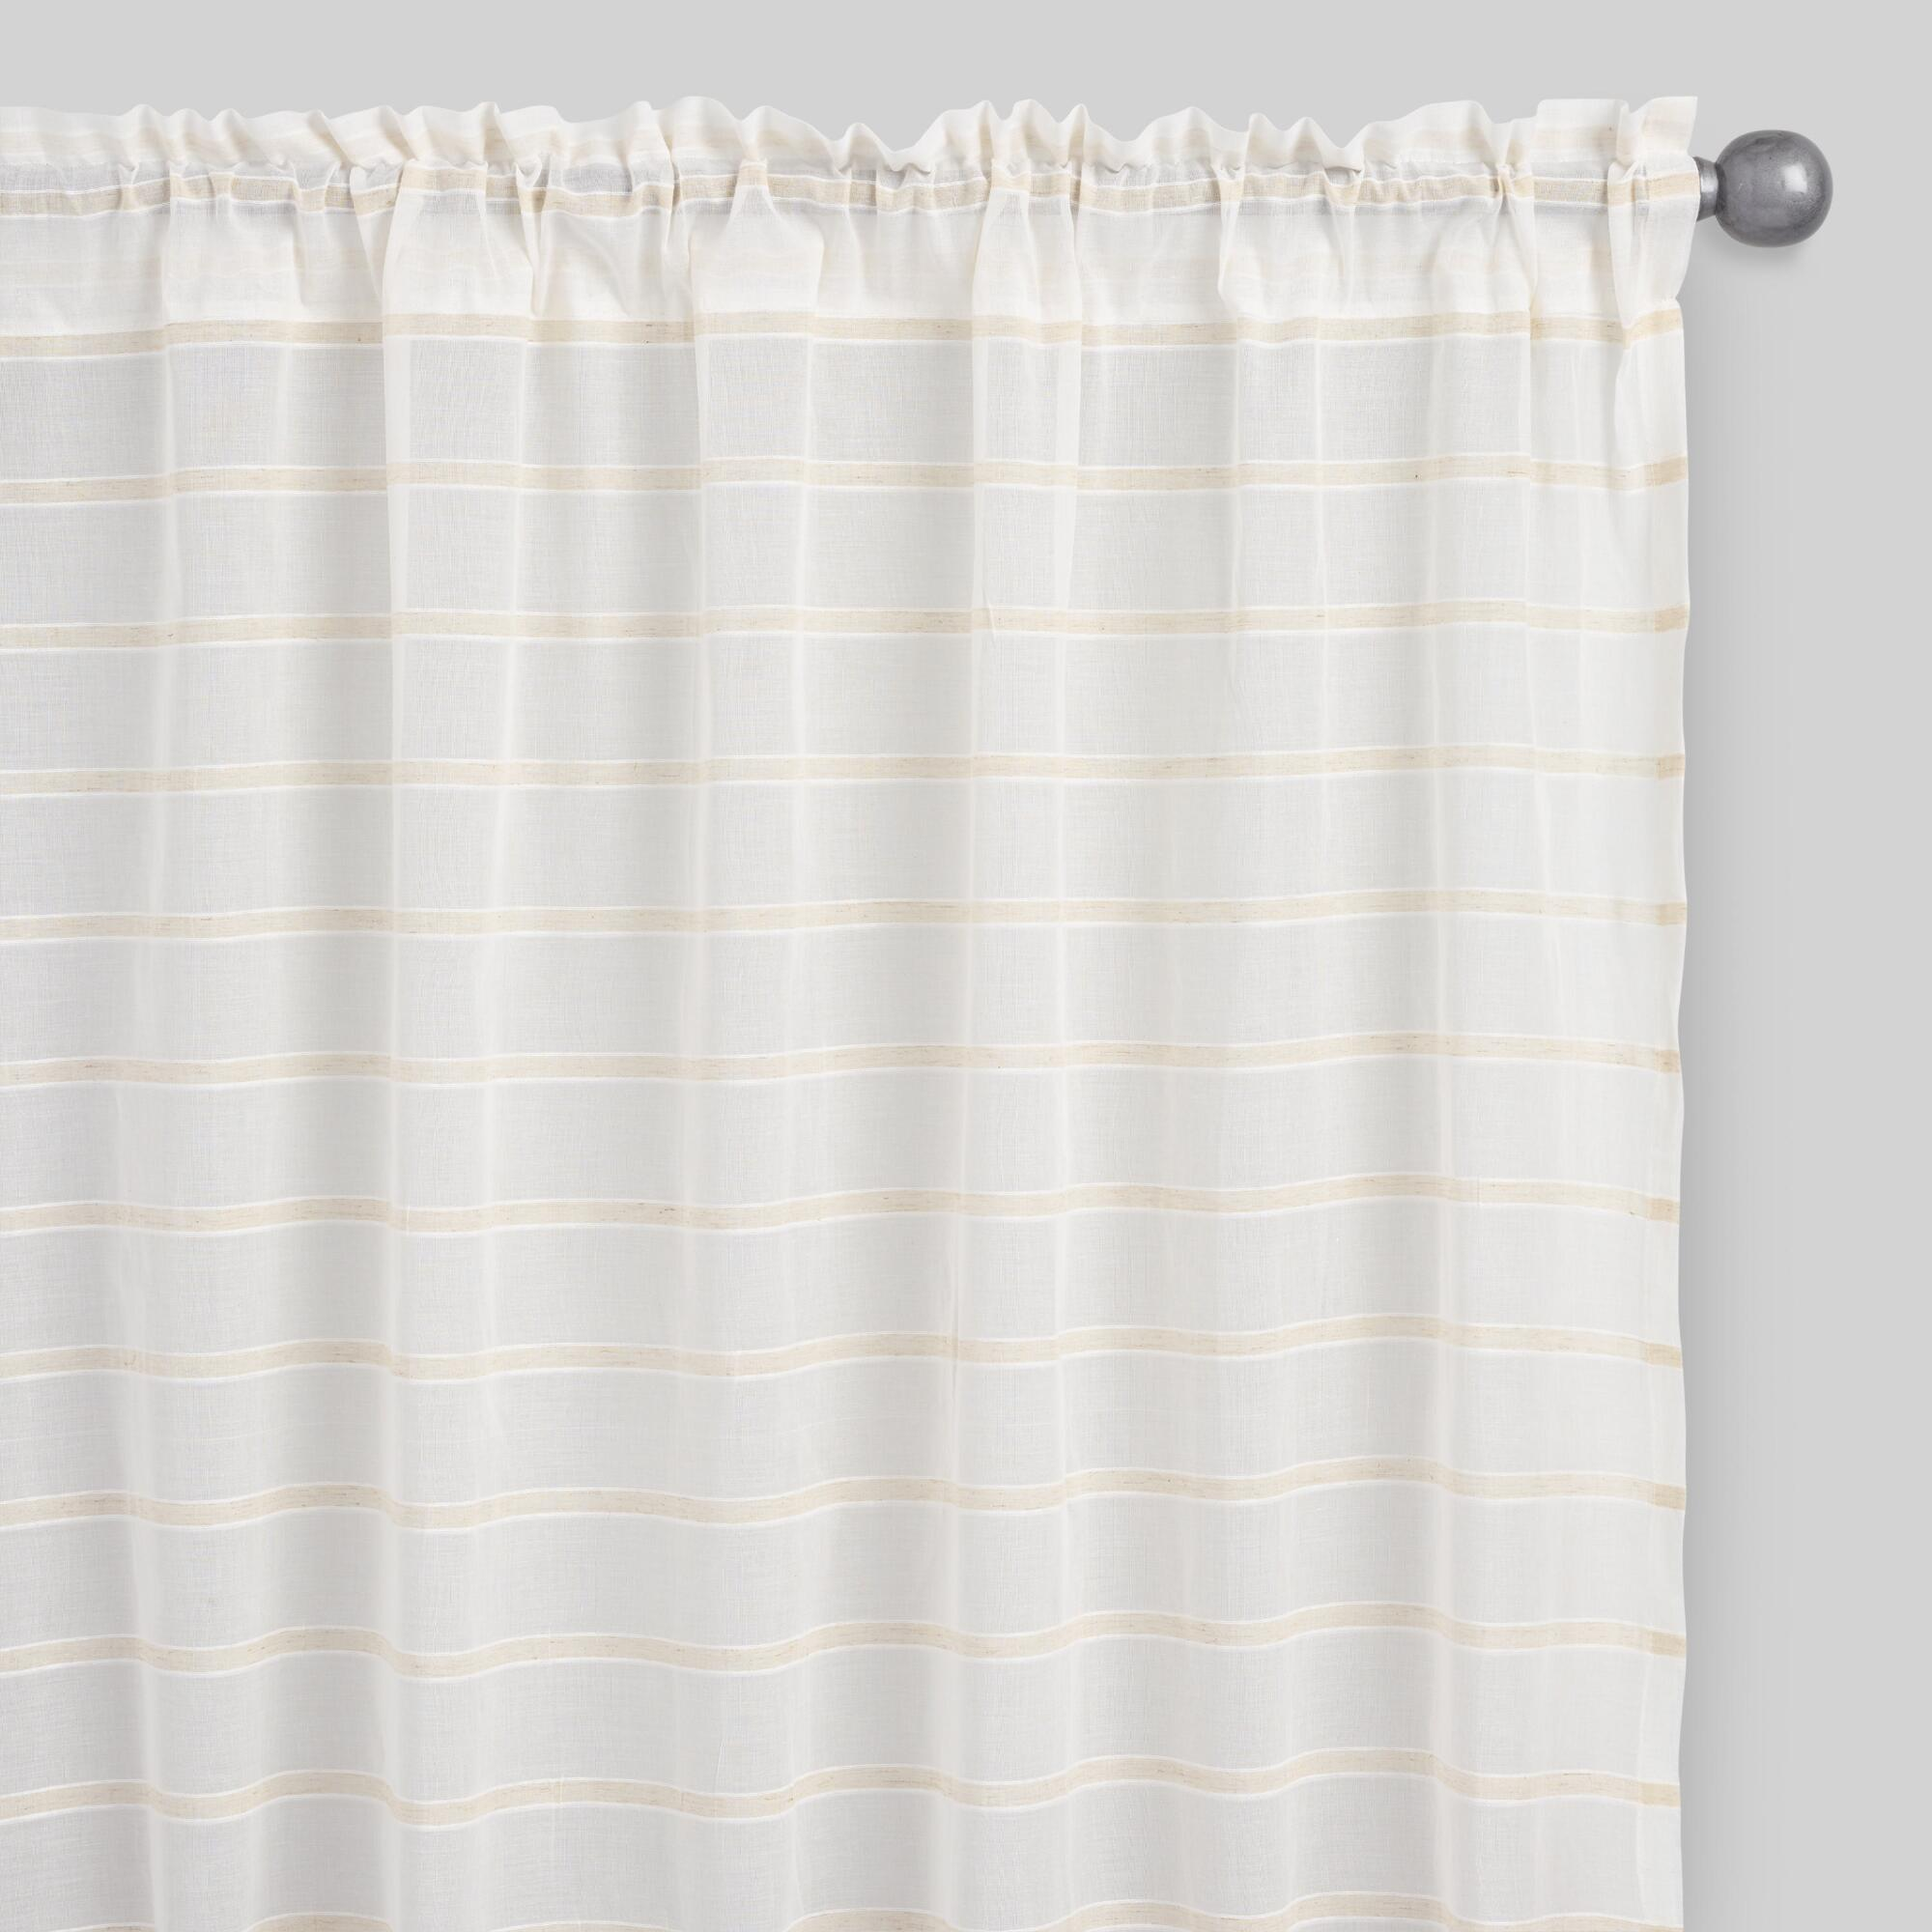 White Sheer Bathroom Curtains Window Curtains Drapes